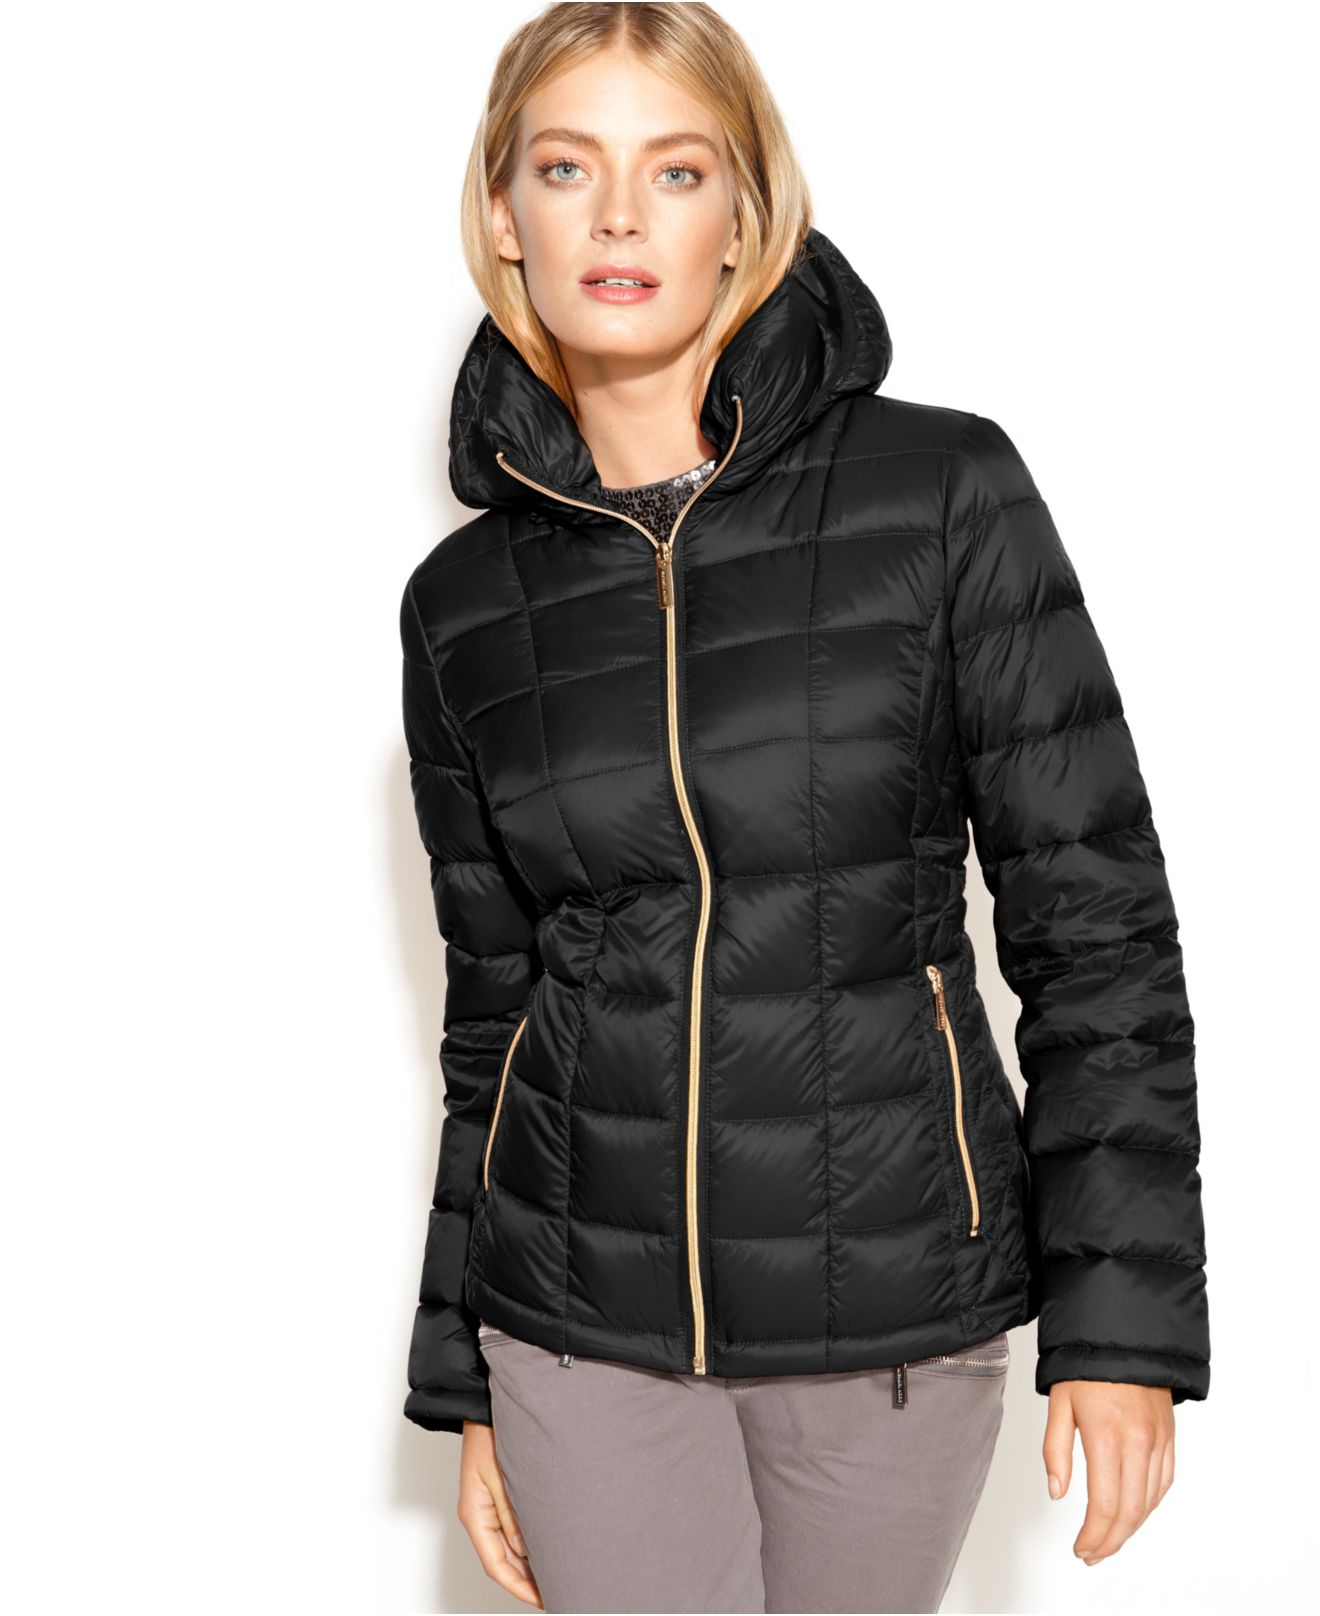 Michael kors womens jacket